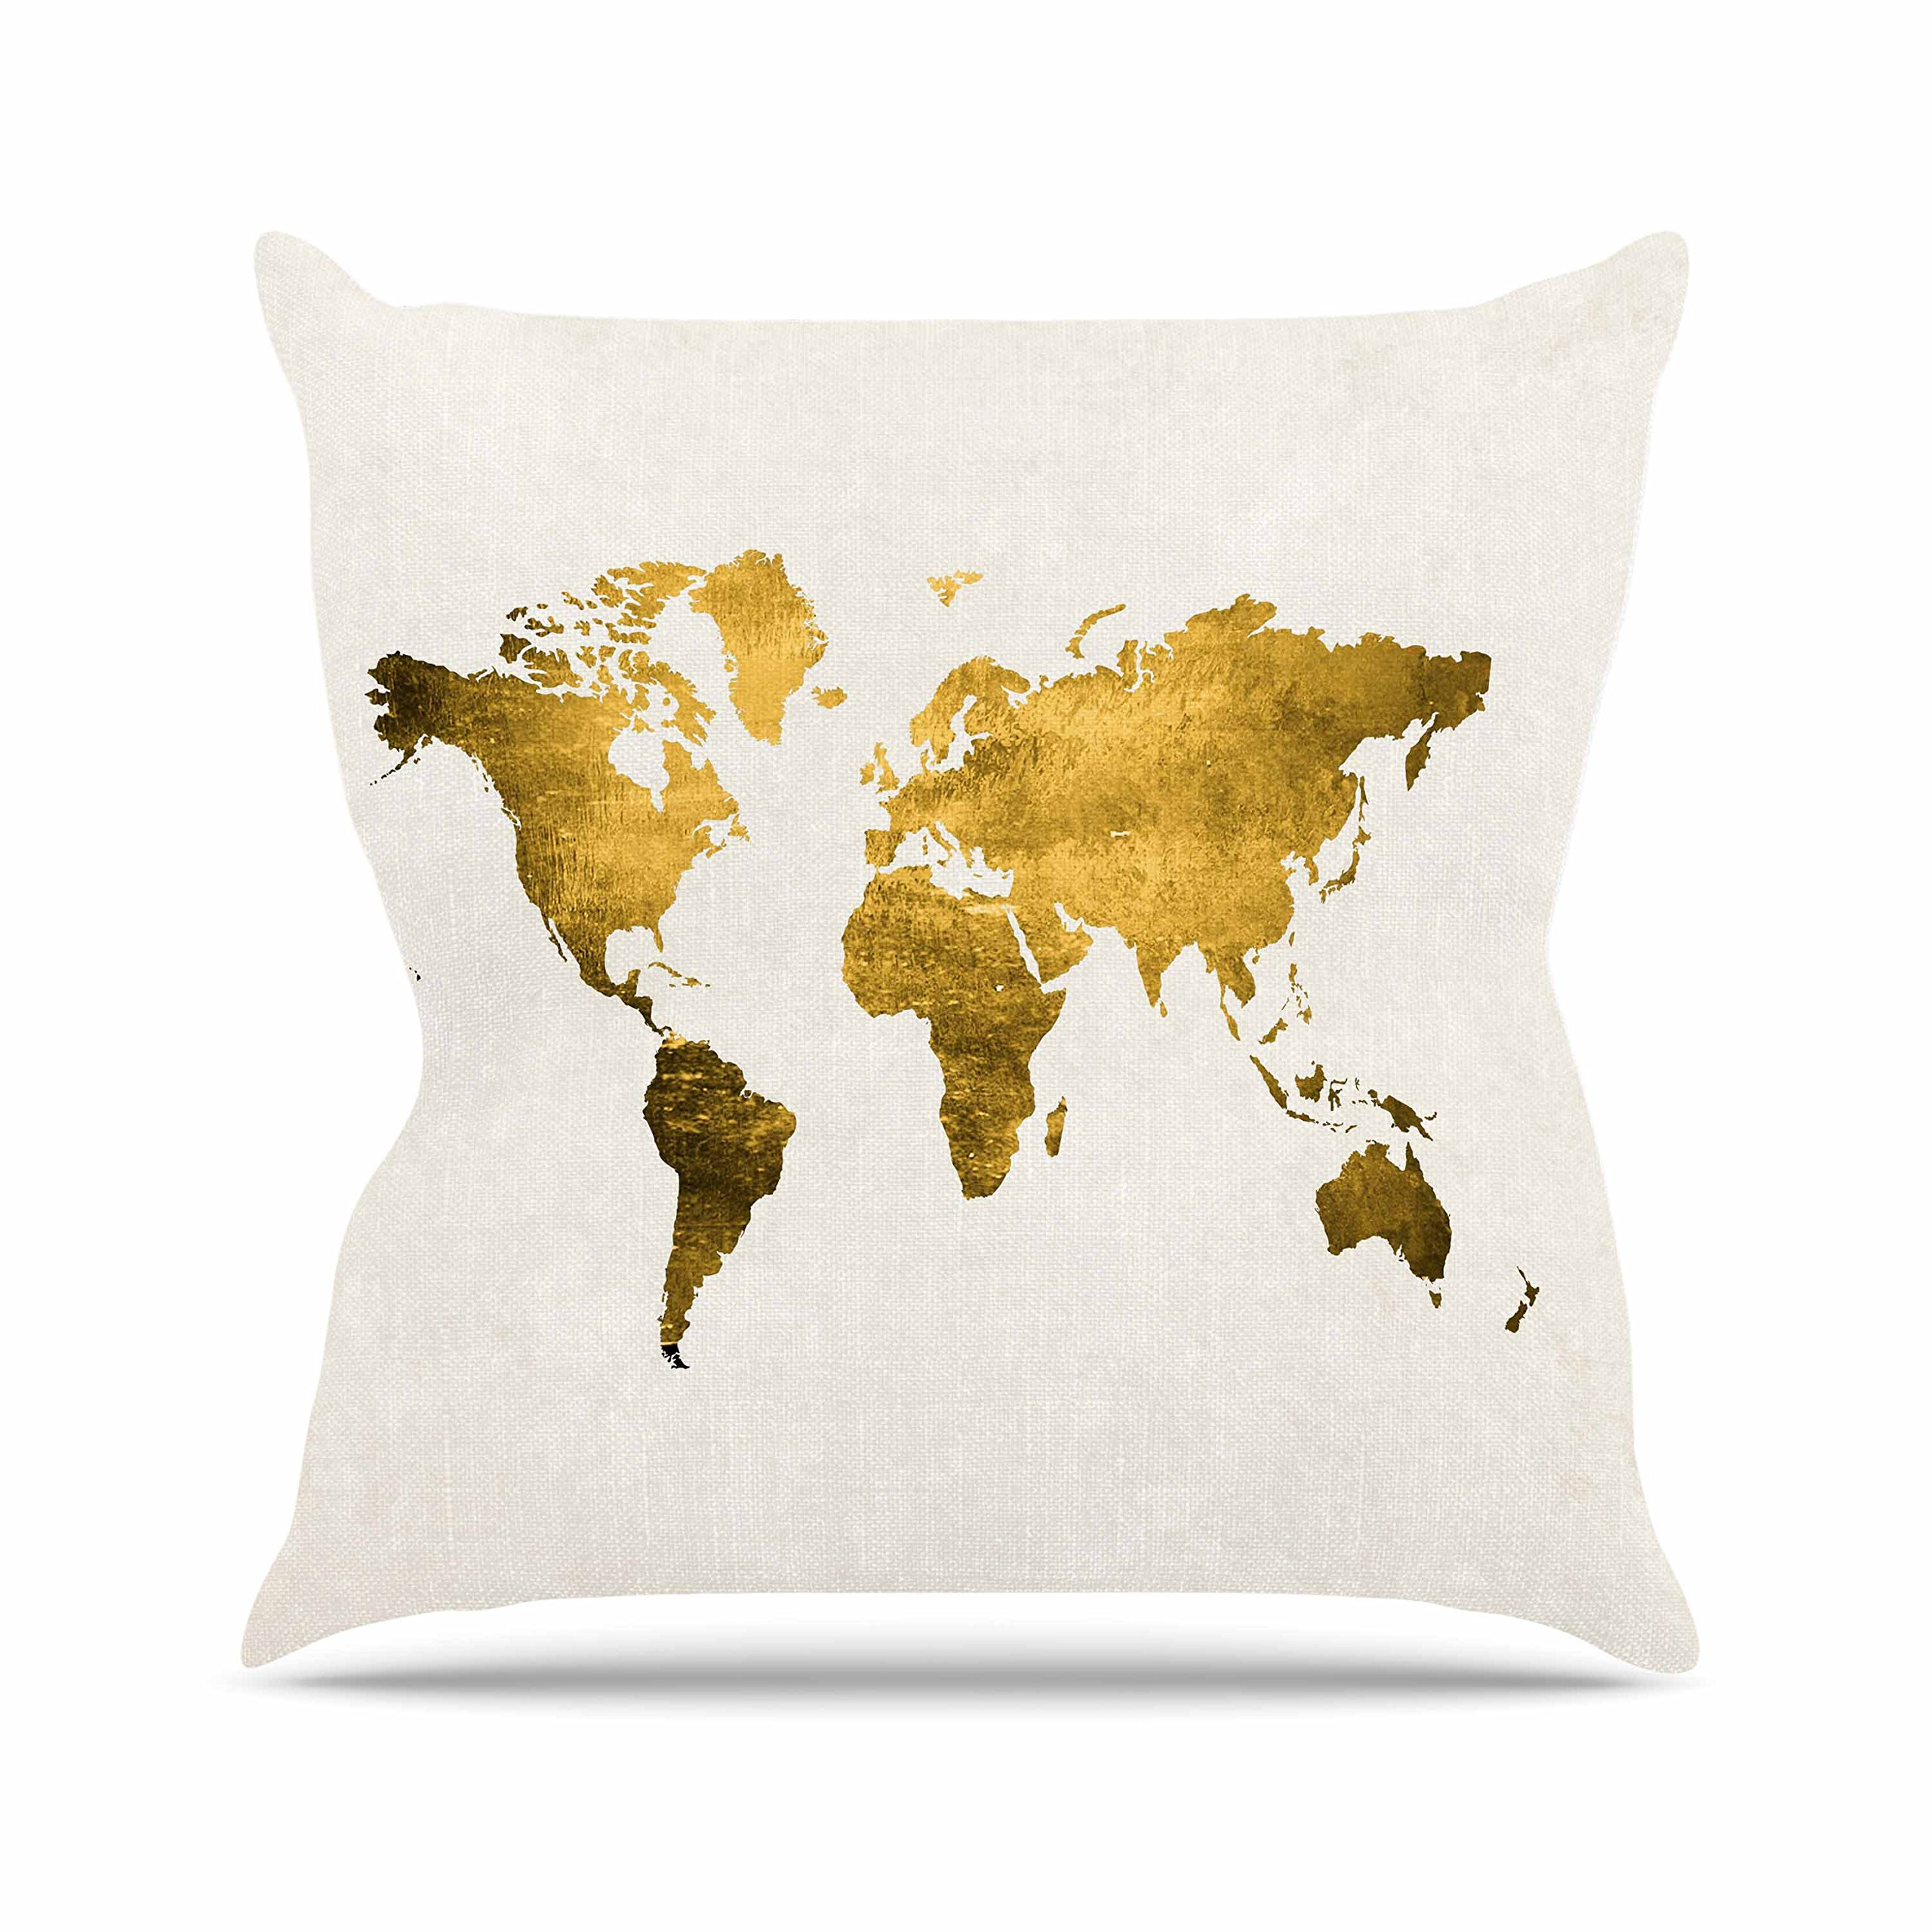 Kess InHouse Chelsea Victoria Let Love Light The Way Gold Love Outdoor Throw Pillow, 16'' x 16''